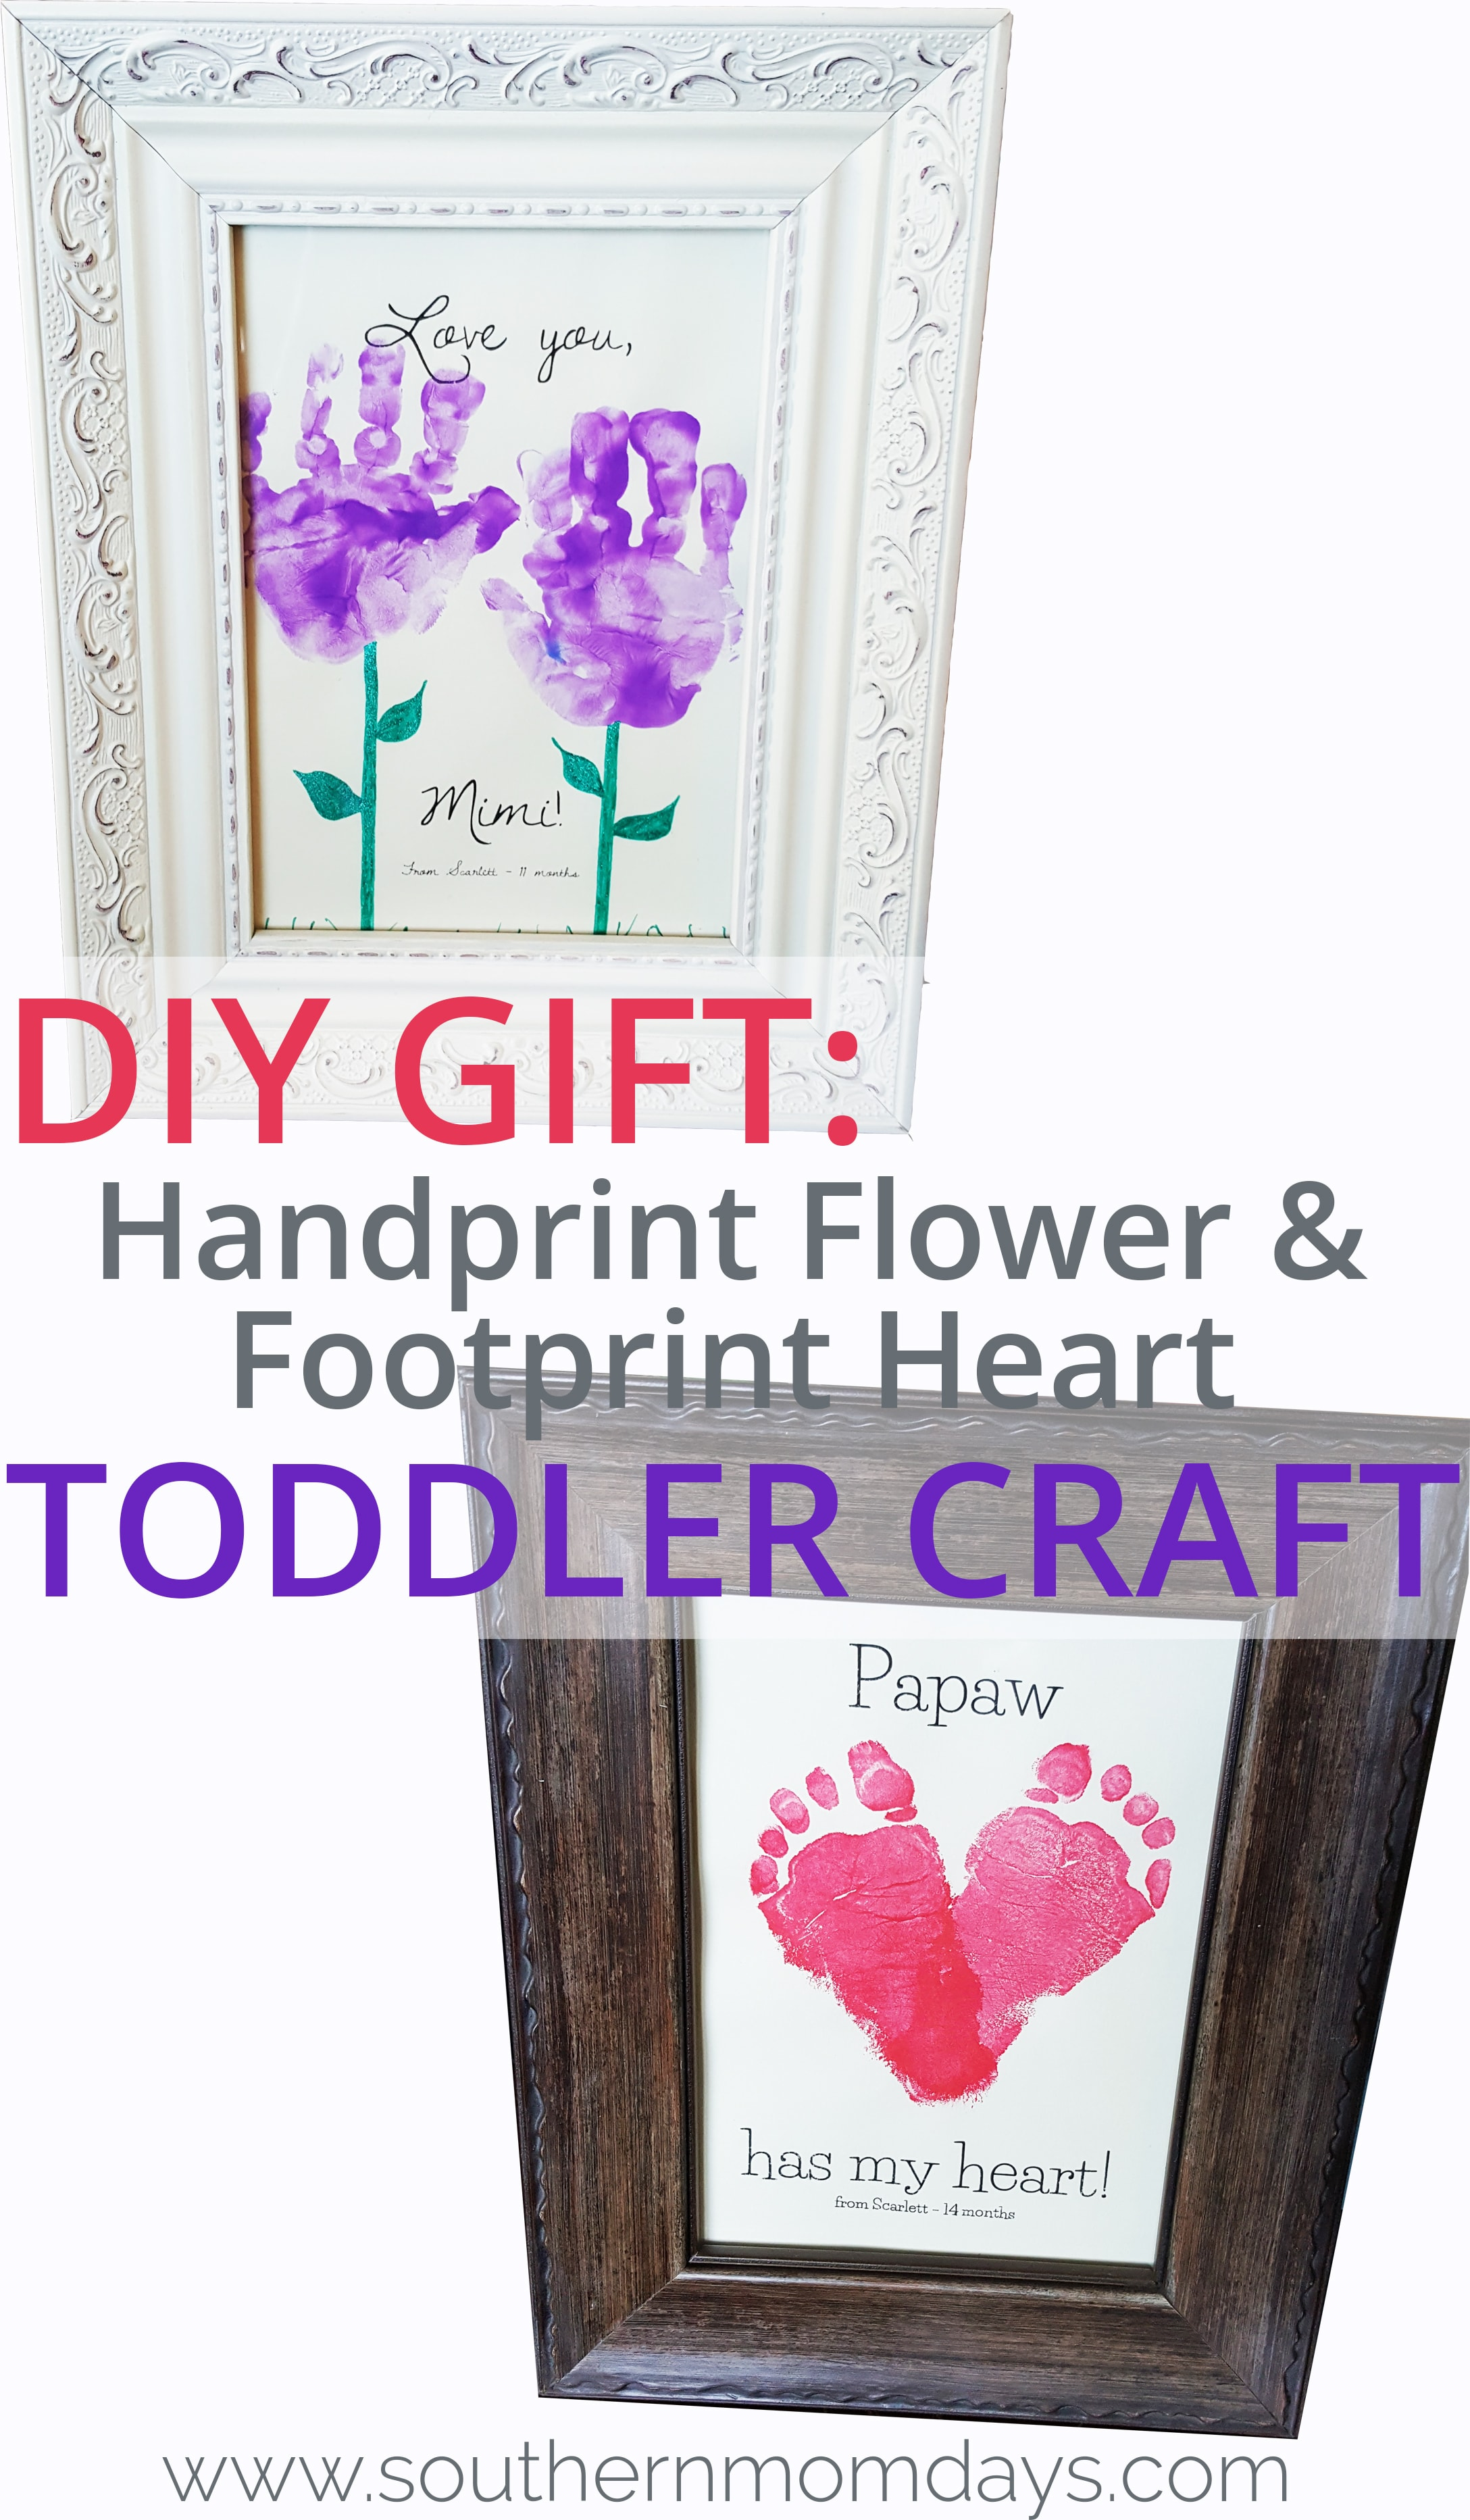 DIY Gift Handprint Flower and Footprint Heart Toddler Craft, featured on the Southern Momdays blog